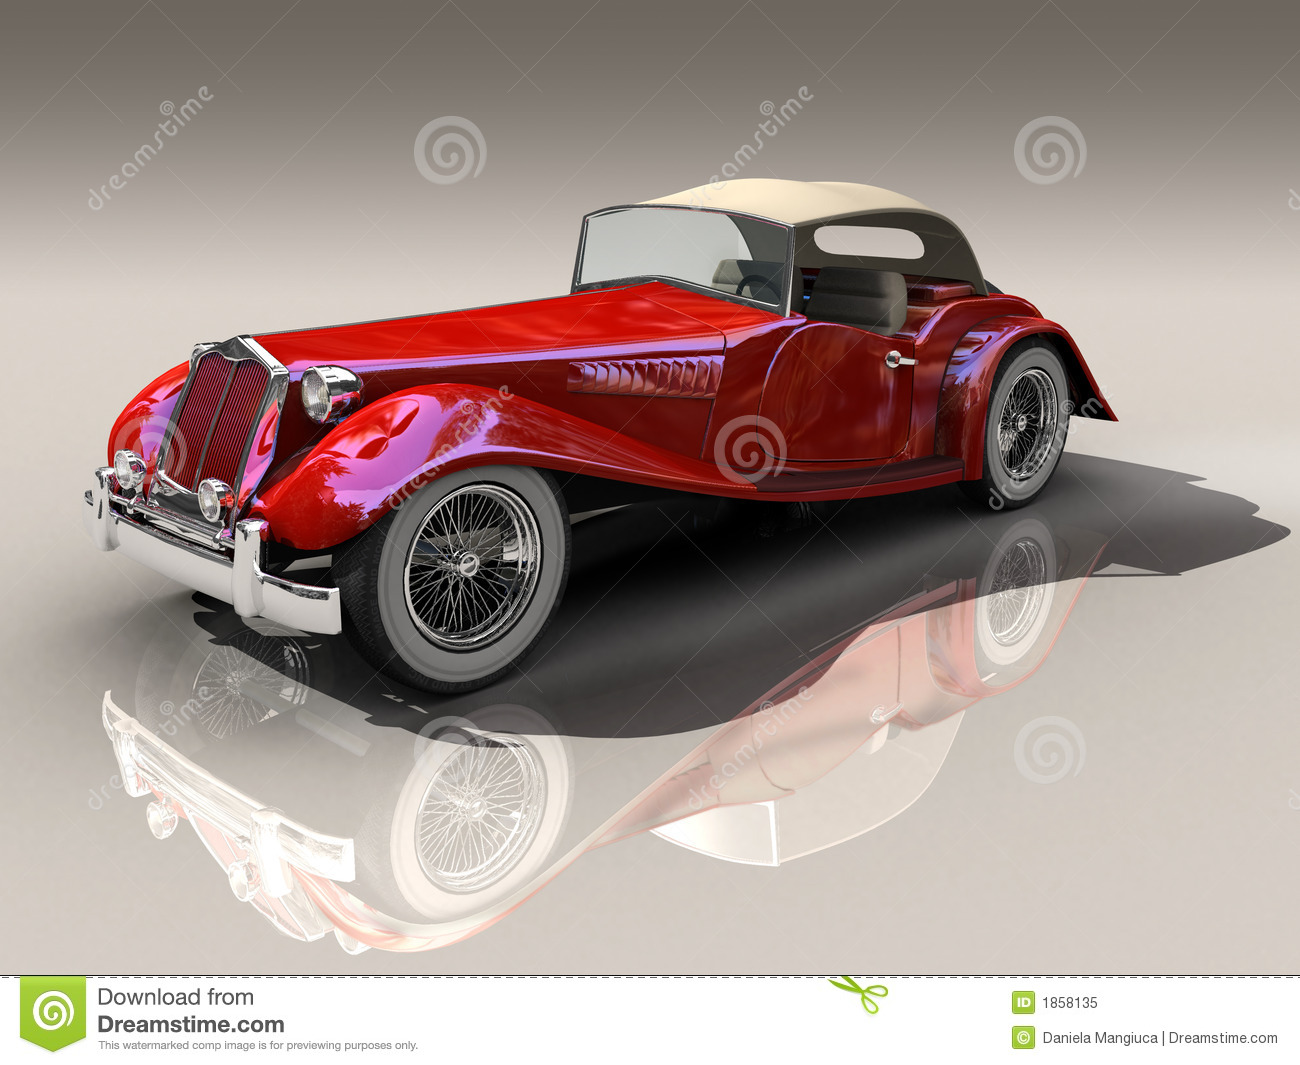 Vintage Red Sports Car 3D Model Stock Illustration - Image: 1985841